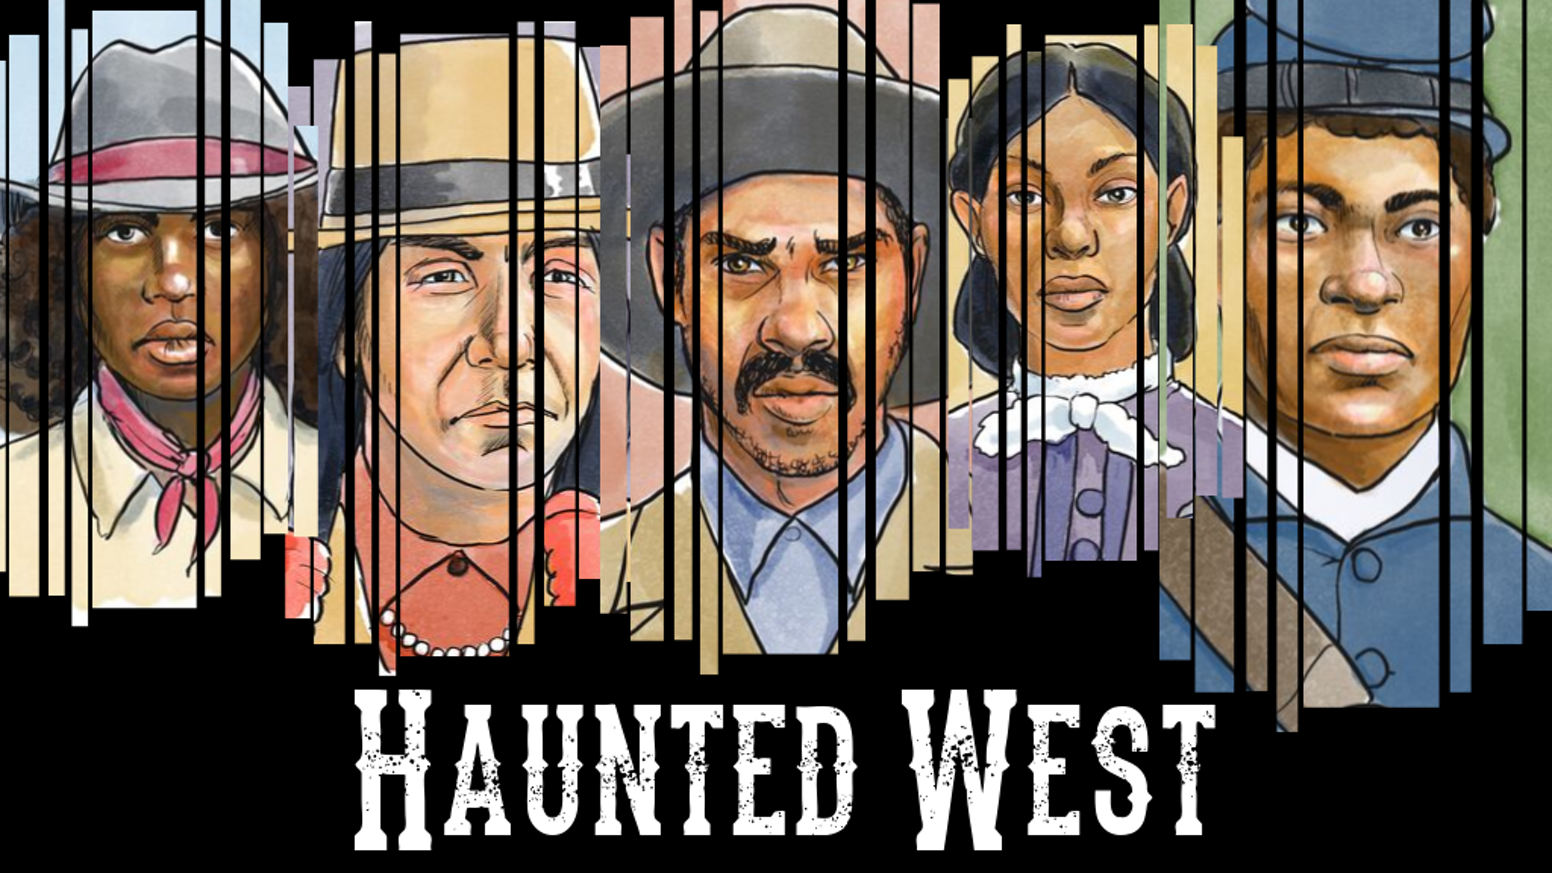 hauntedwest.png